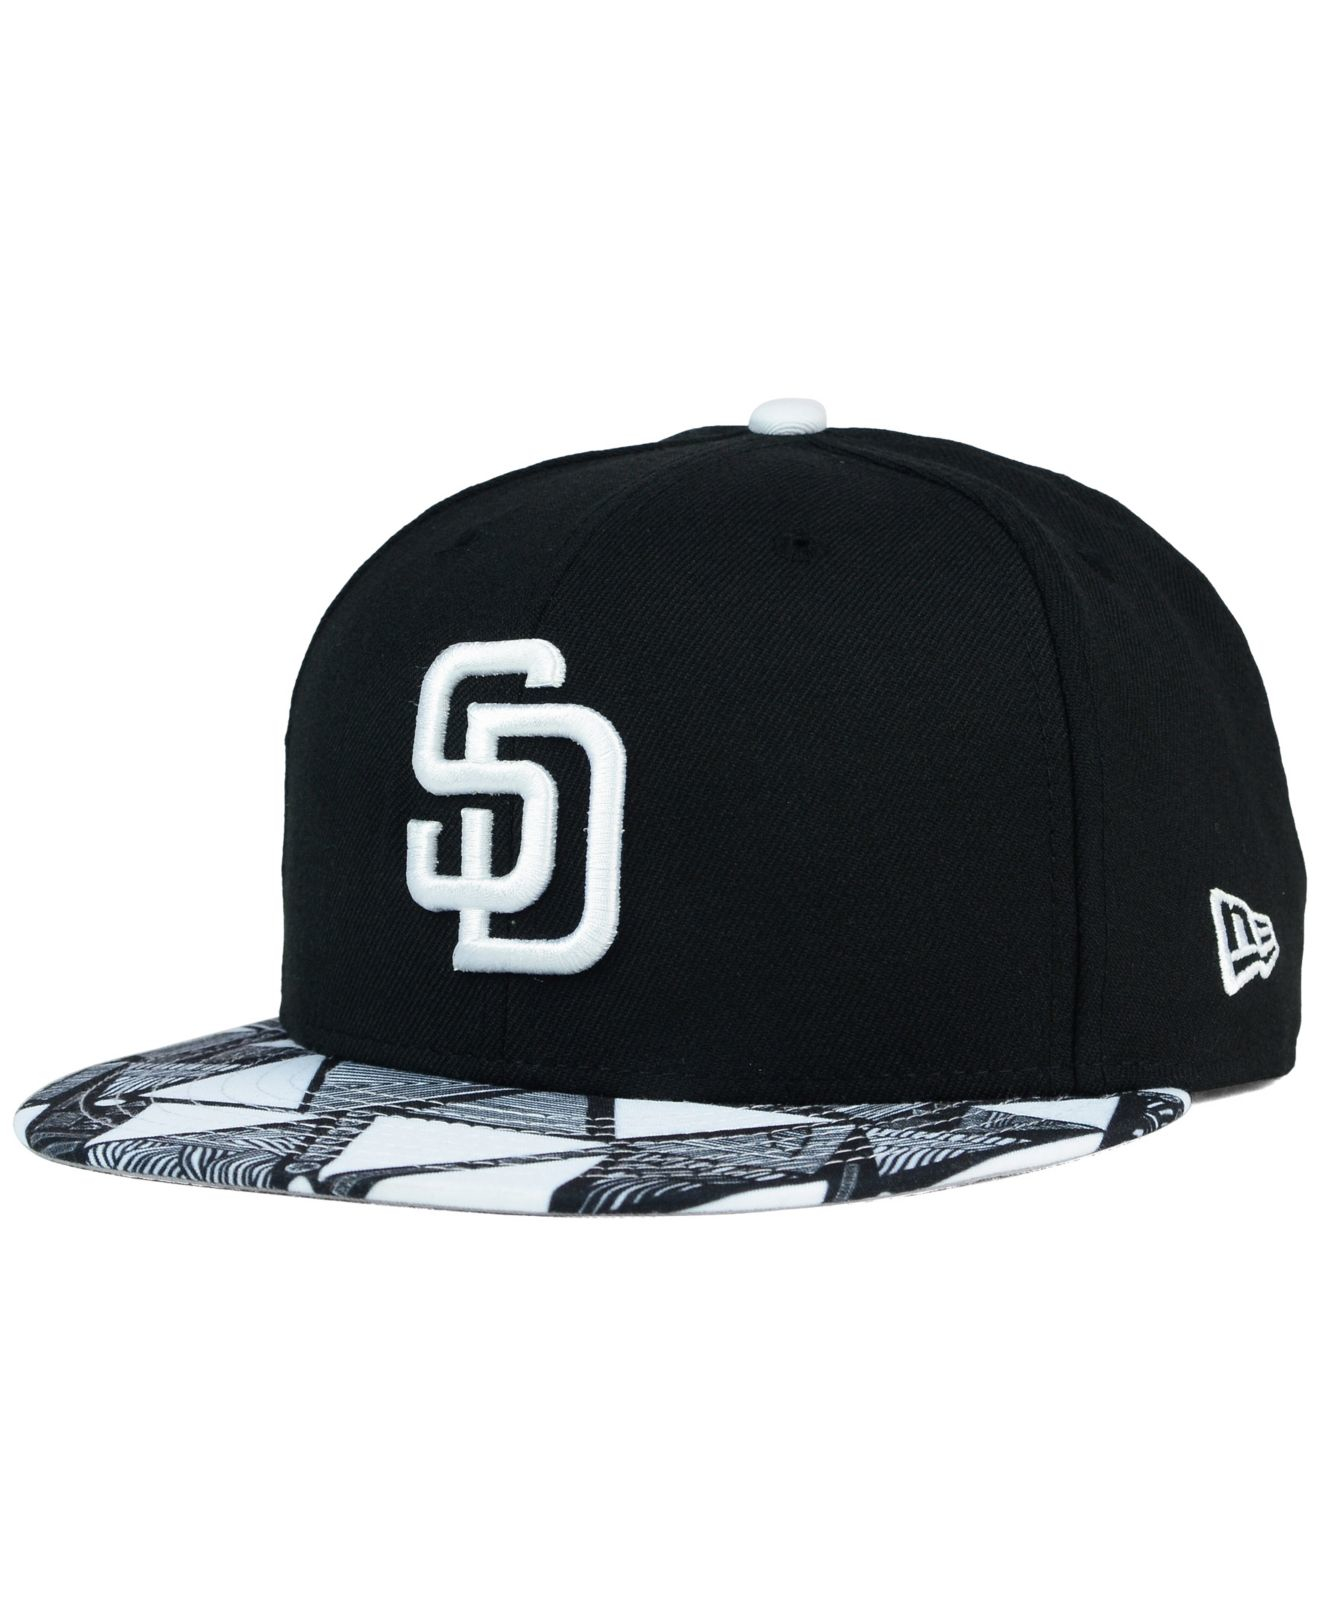 size 40 302b2 2a72c ... greece lyst ktz san diego padres istic 9fifty snapback cap in black for  men ea1d1 e15ac